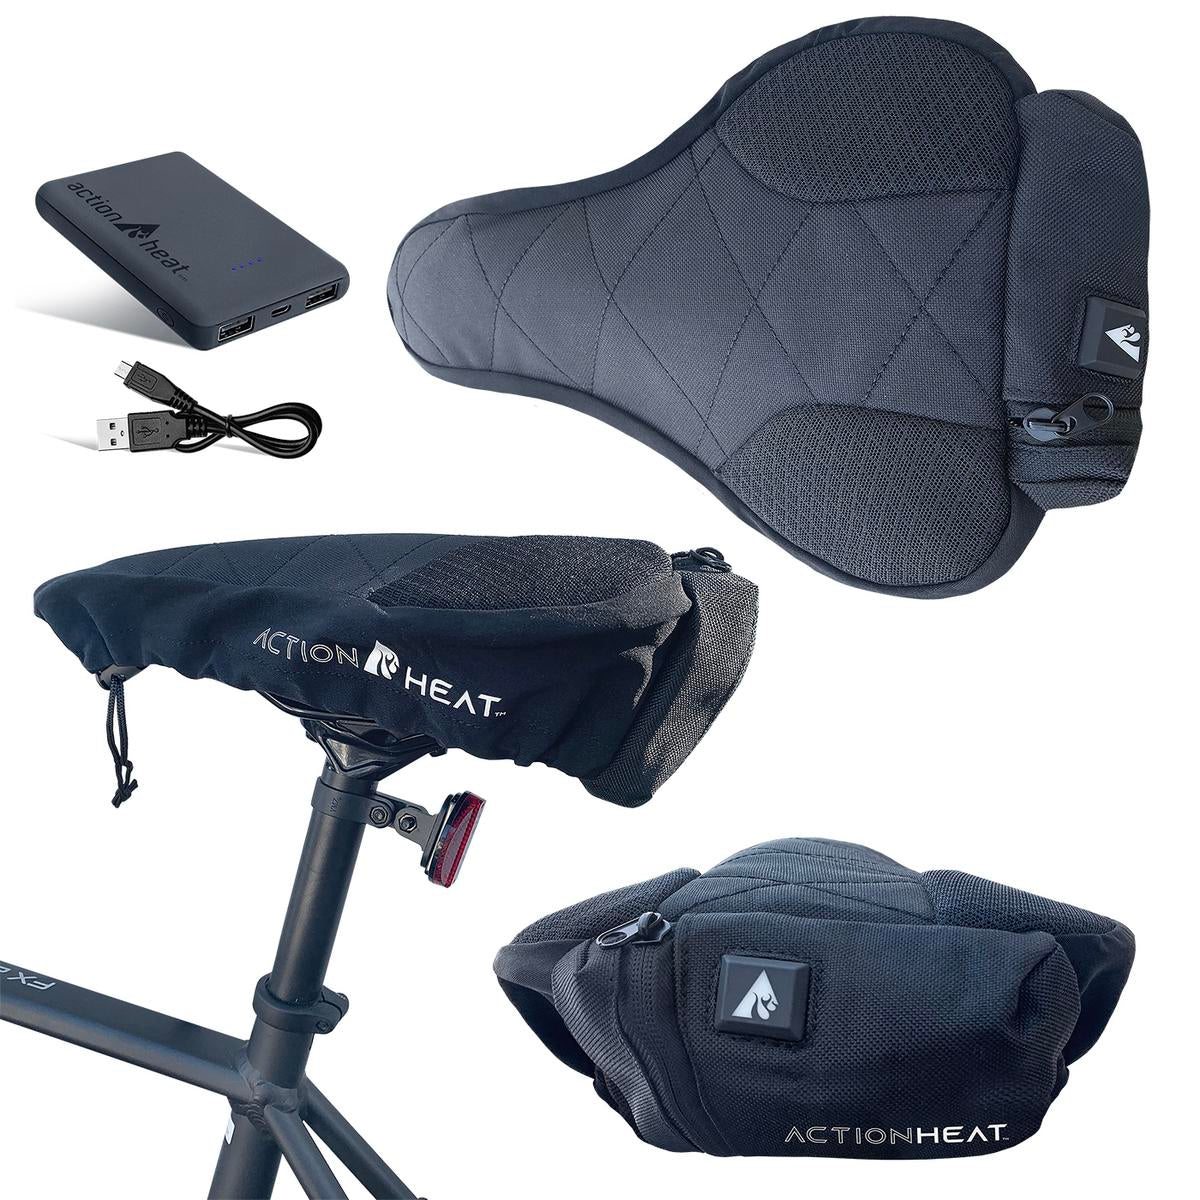 ActionHeat 5V Battery Heated Bicycle Seat - Full Set